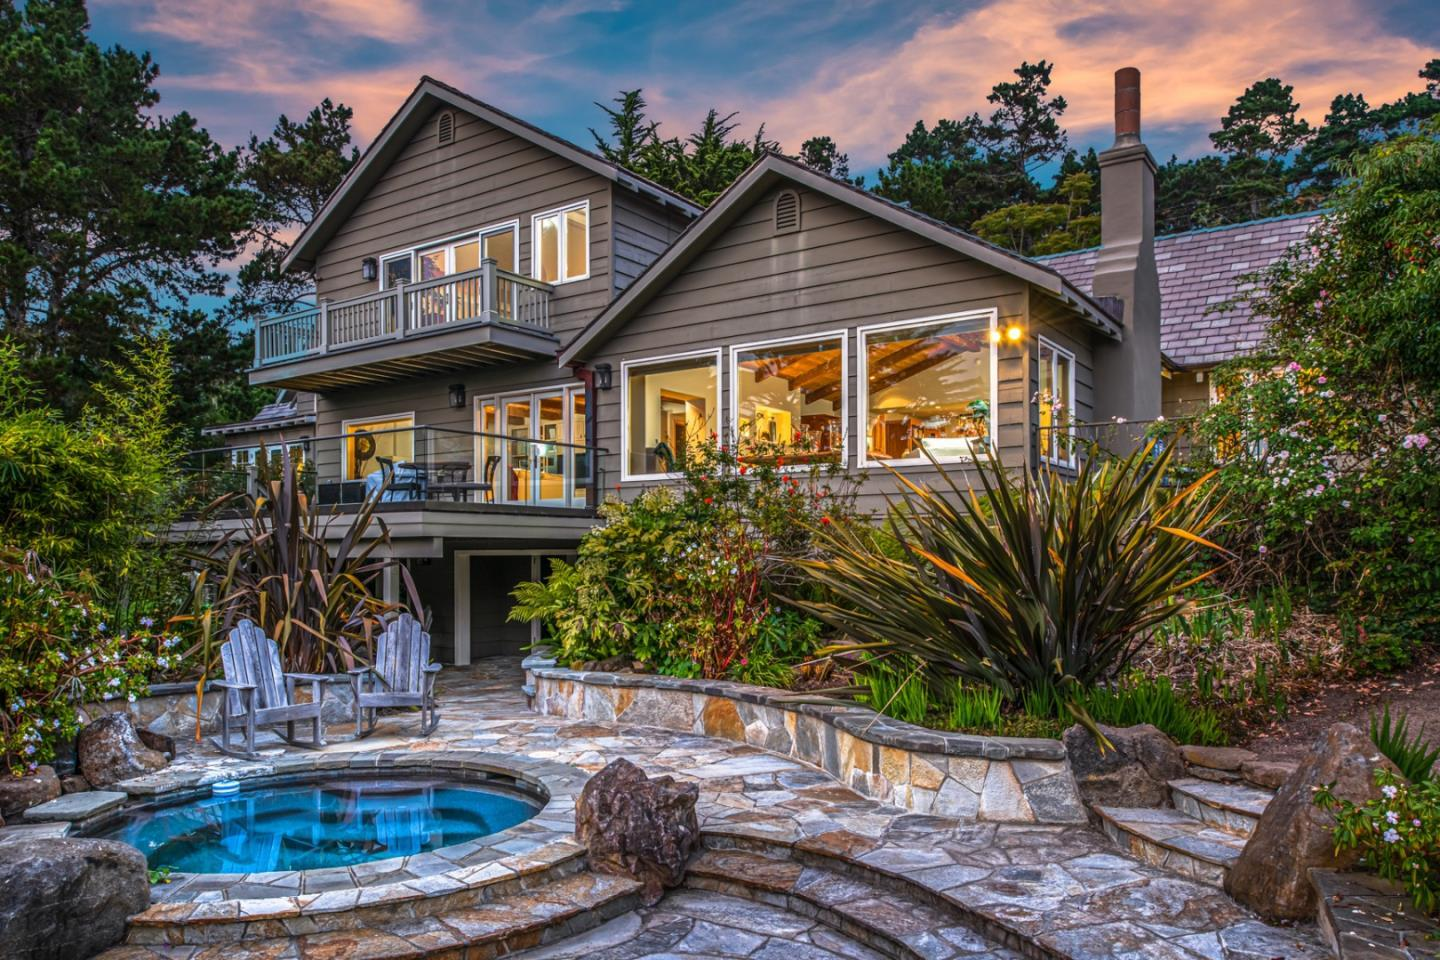 3892 Ronda Road - Pebble Beach, California